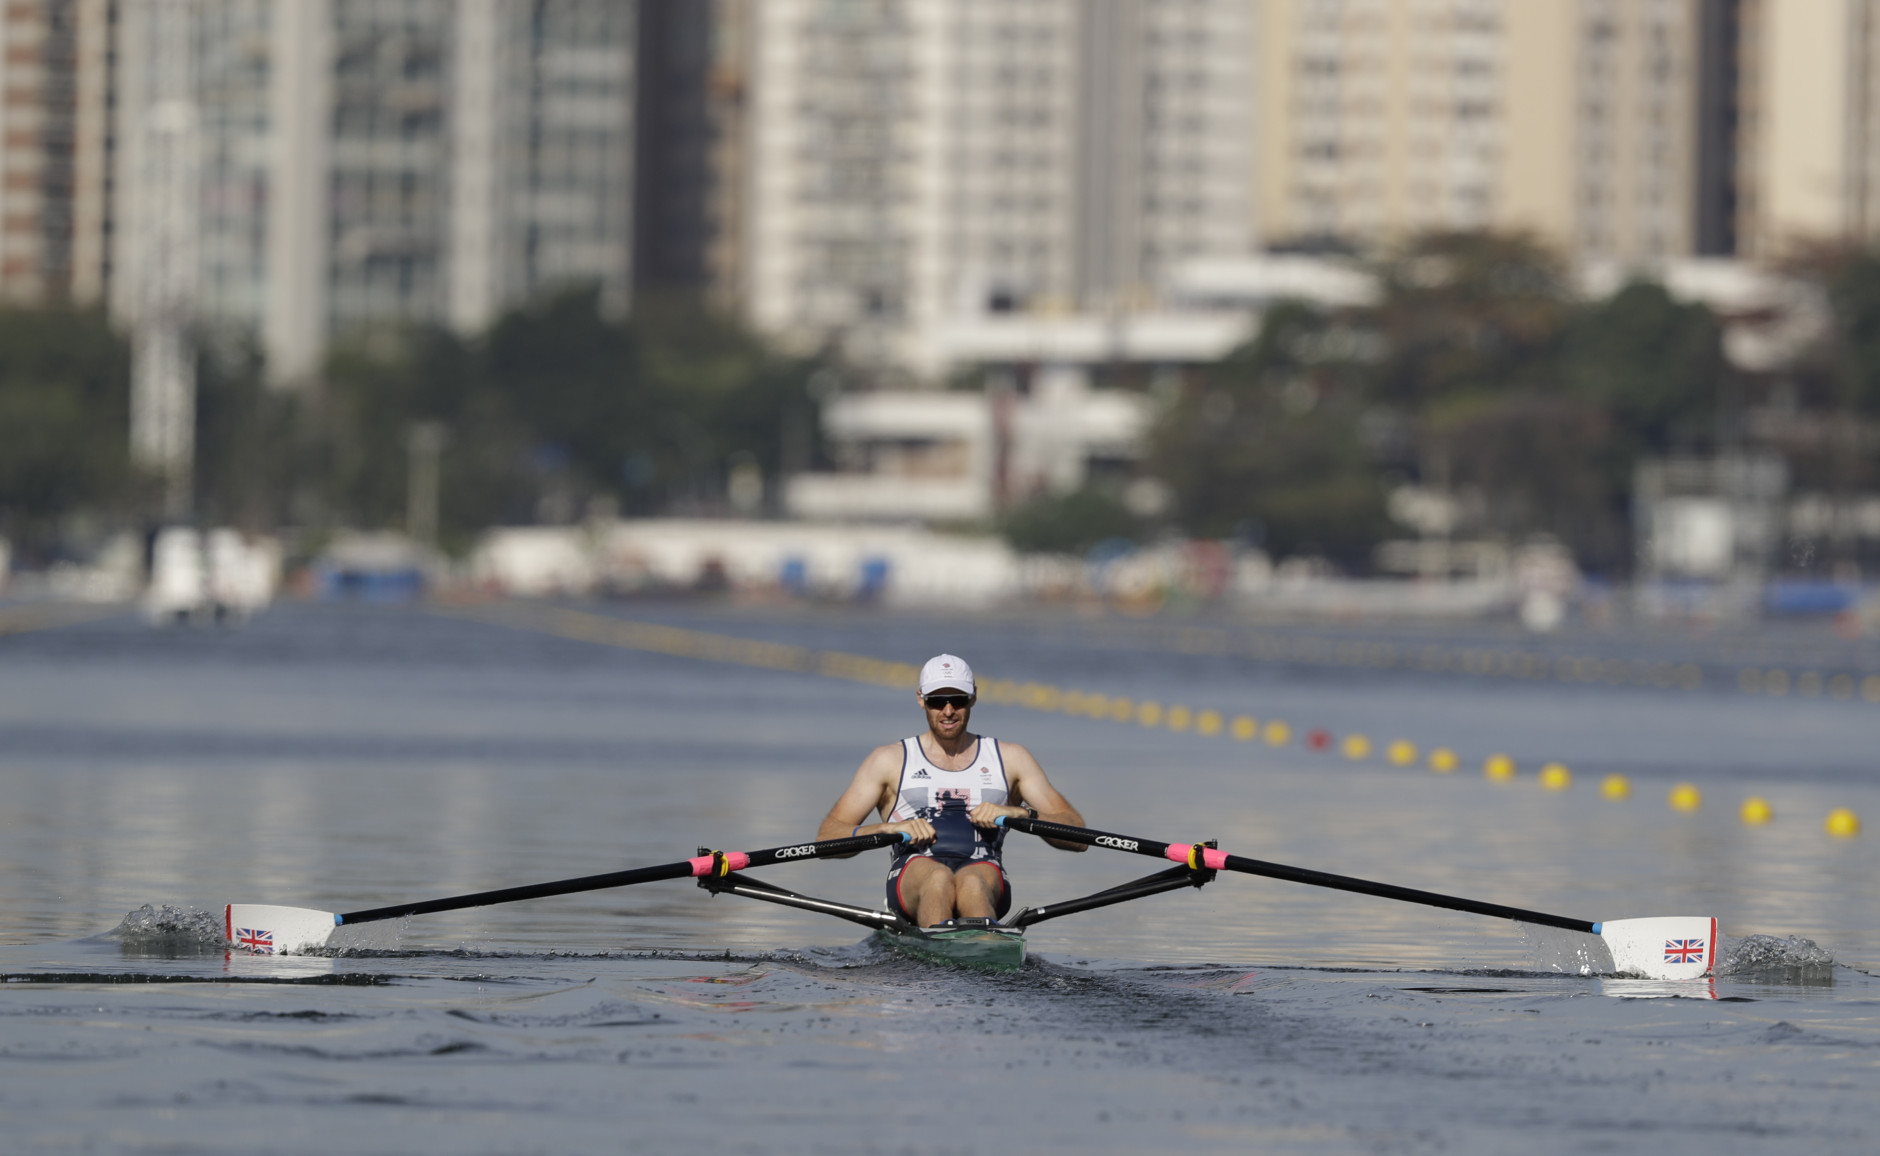 Gret Britain's Alan Campbell competes in the Men's Rowing single sculls in Lagoa during the 2016 Summer Olympics in Rio de Janeiro, Brazil, Saturday, Aug. 6, 2016. (Luca Bruno)